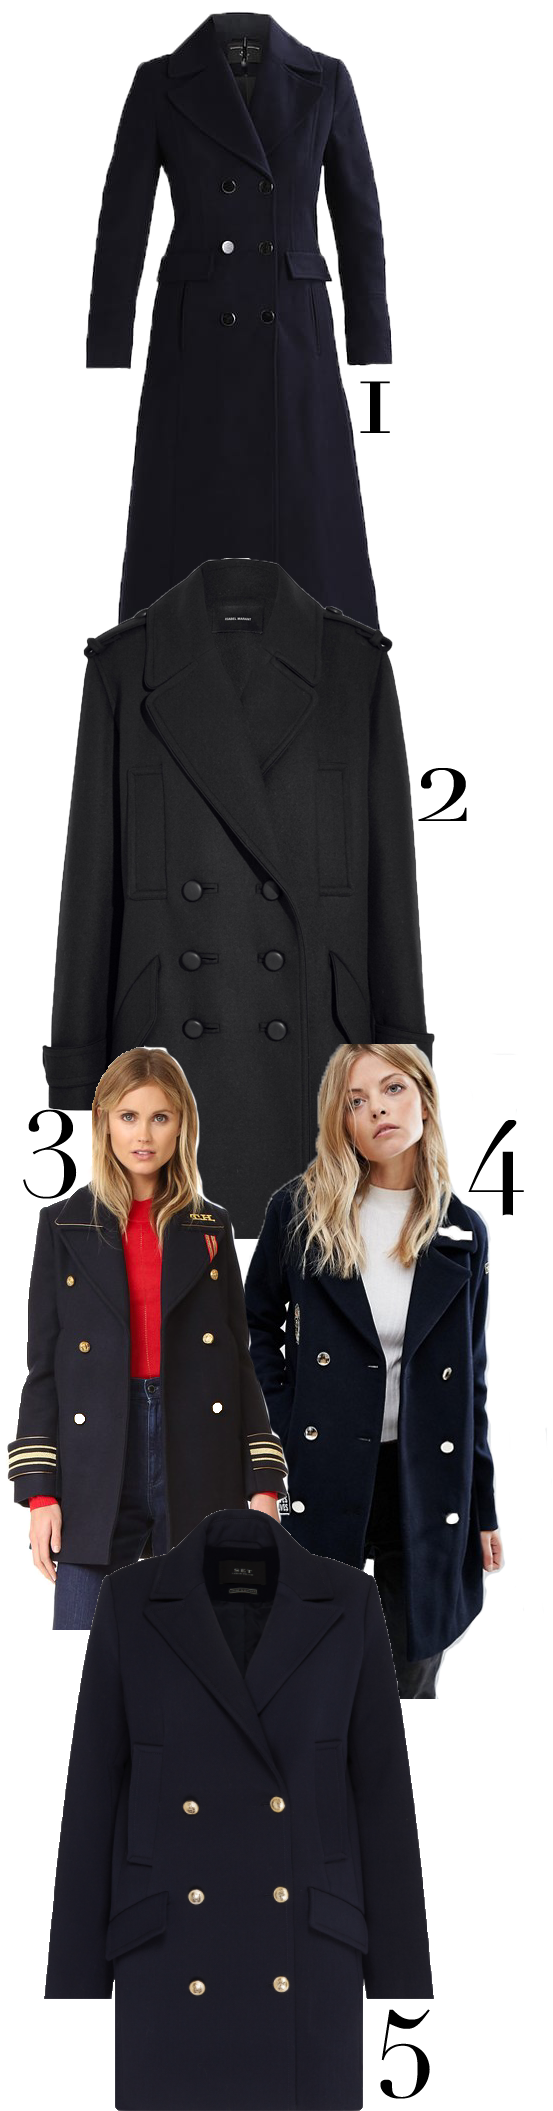 masha-sedgwick-military-coats-peacoat-fashion-shopping